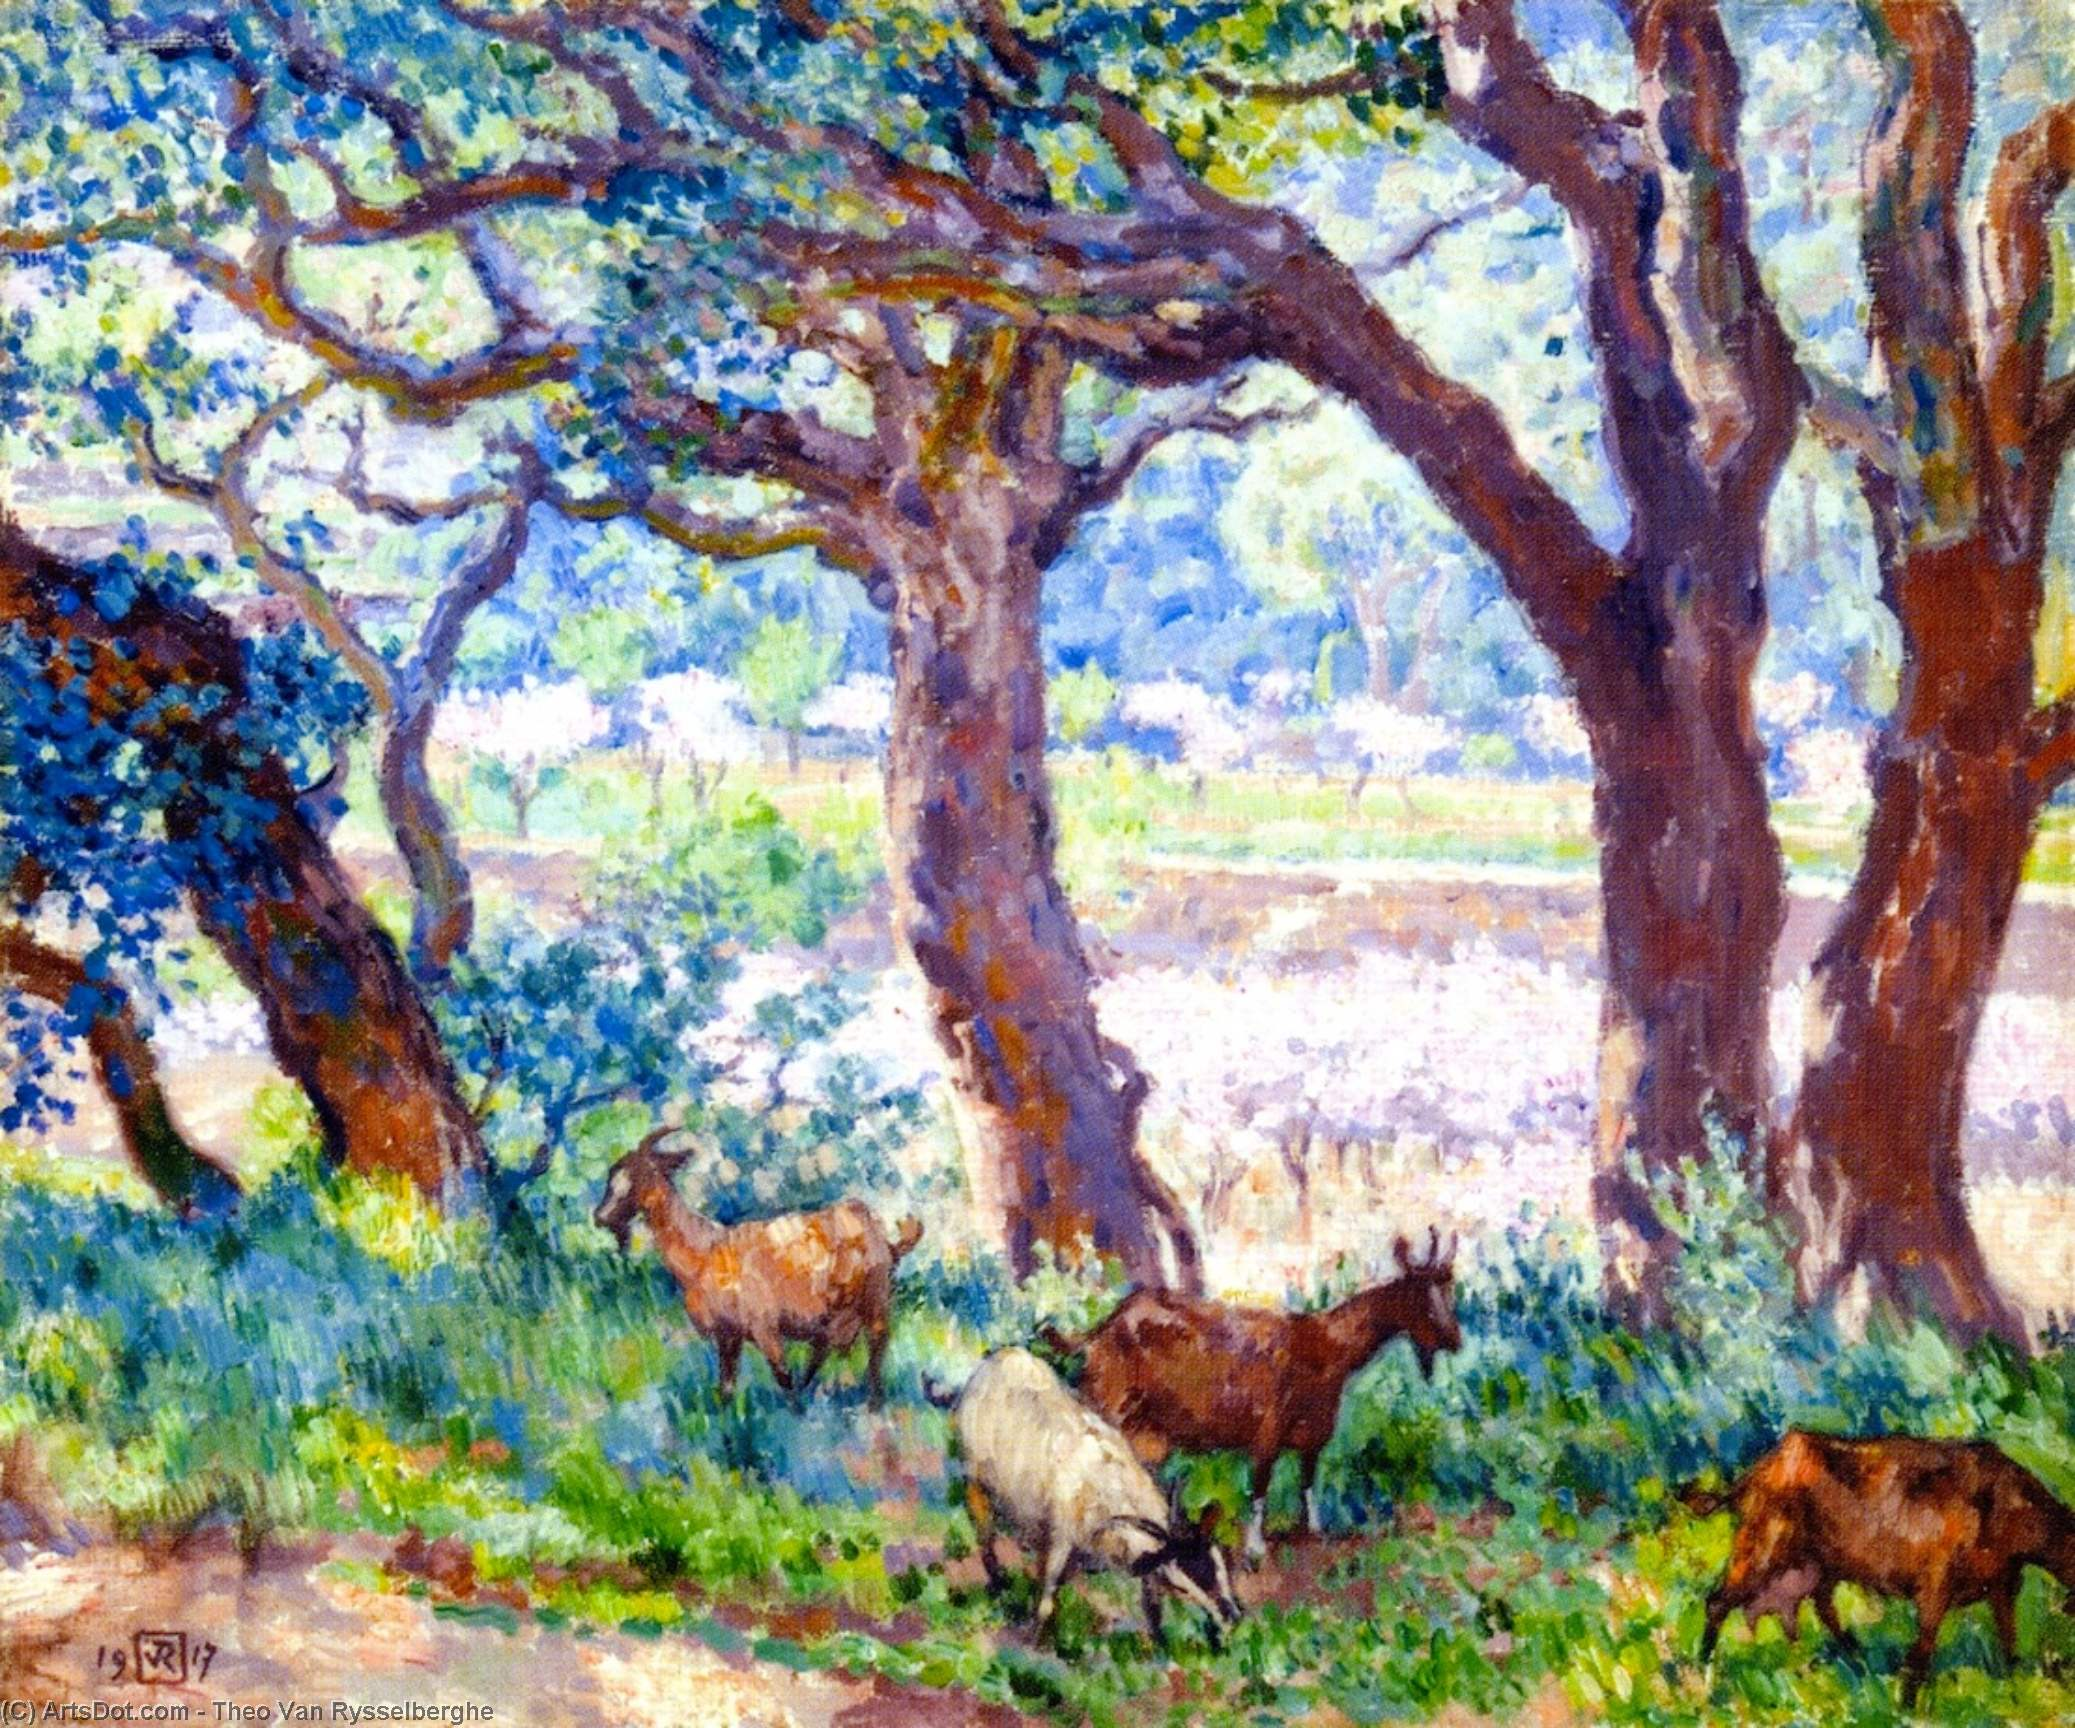 Peach Trees in Blossom, Cork Oaks and Goats, 1917 by Theo Van Rysselberghe (1862-1926, Belgium) | ArtsDot.com